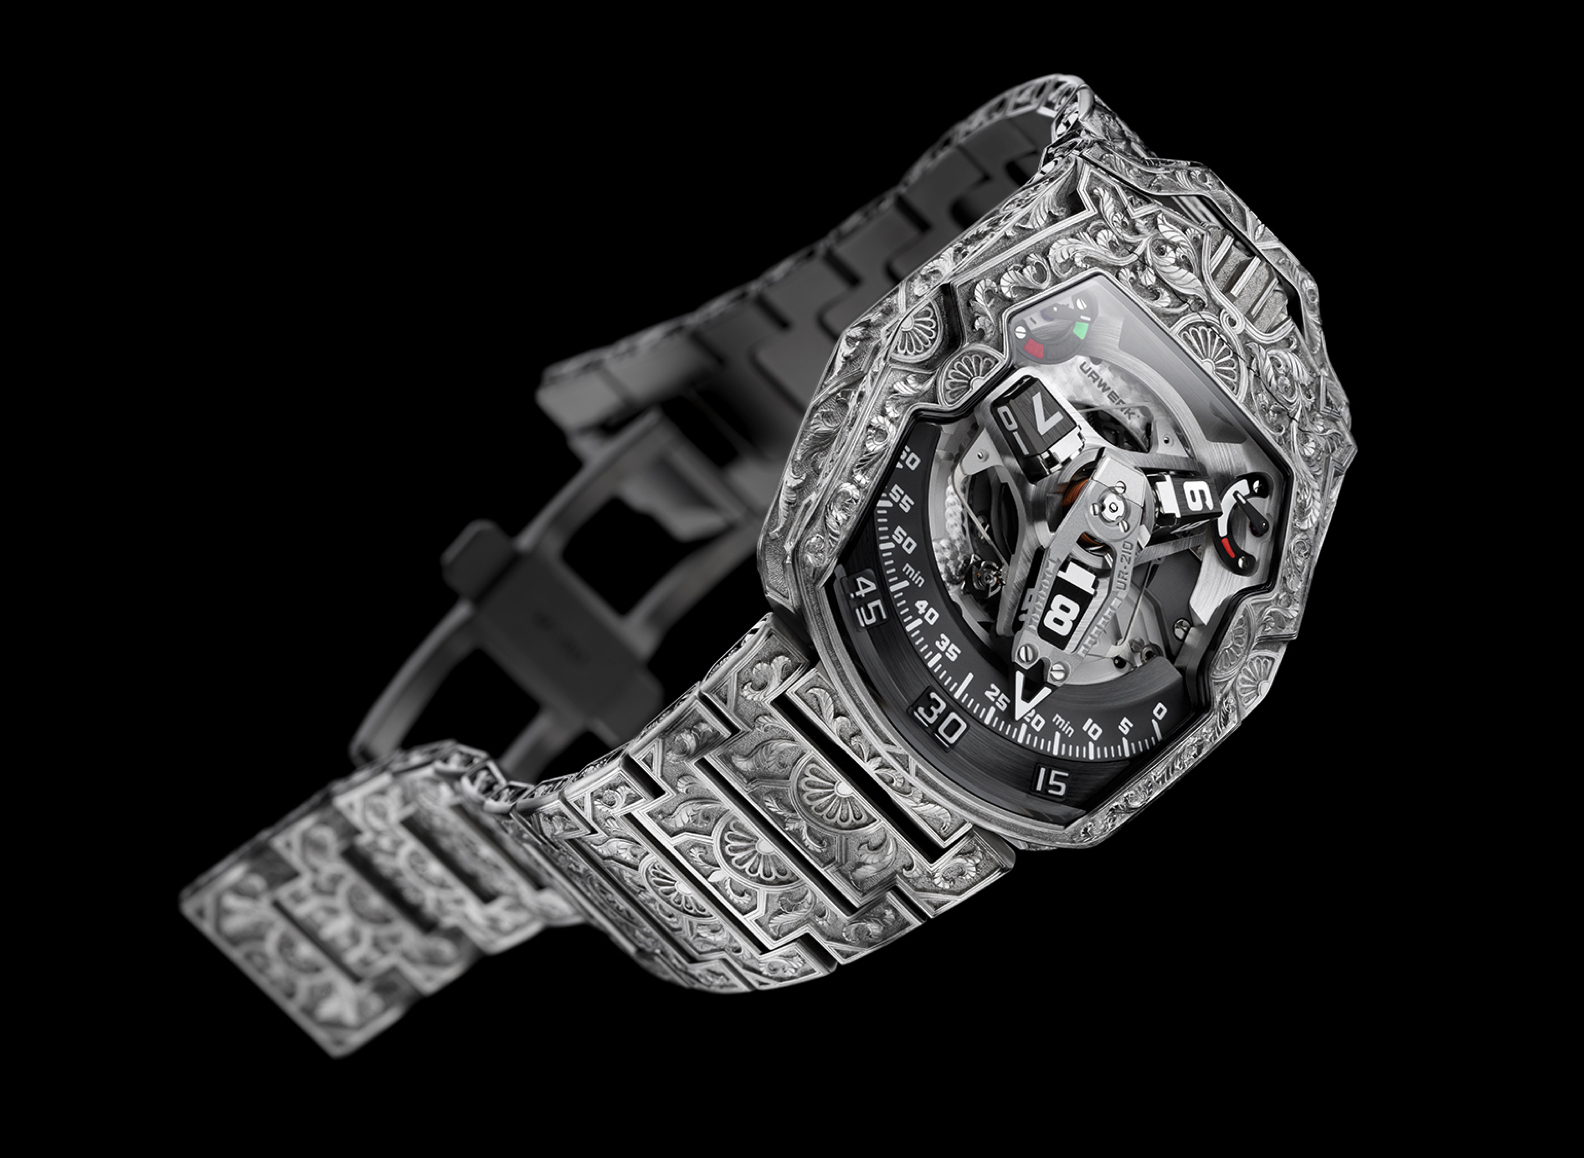 URWERK DUBAI UR 210 Watch